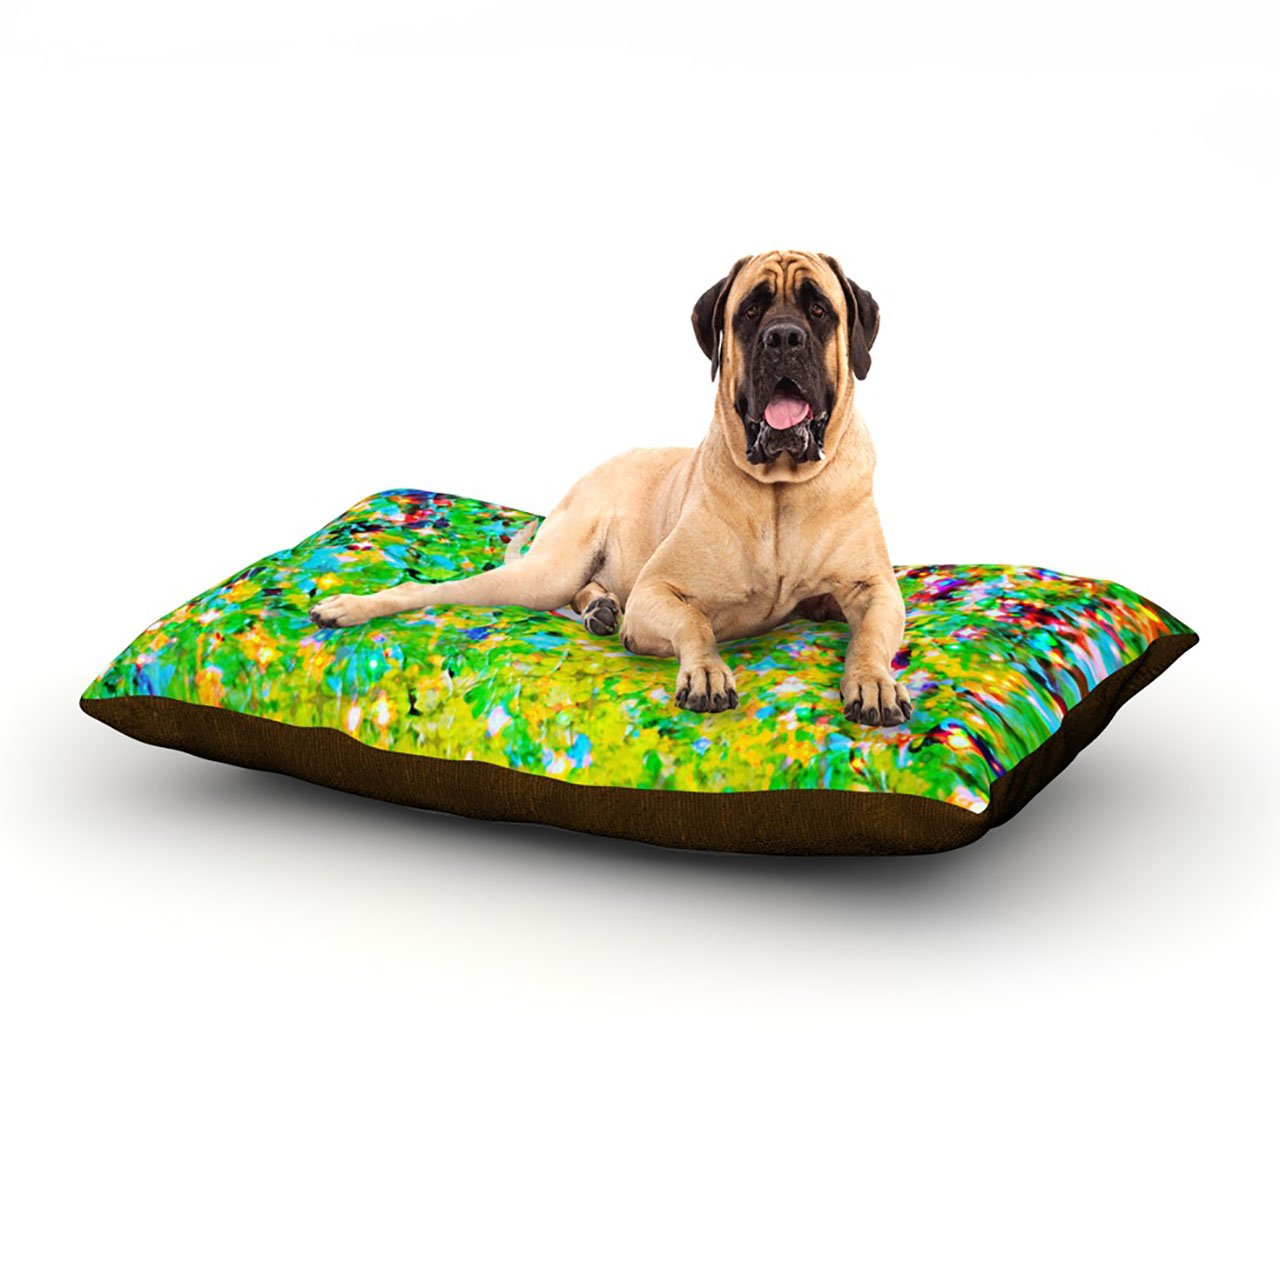 Holiday Cheer X-Large 40\ Holiday Cheer X-Large 40\ Kess InHouse EBI Emporium Holiday Cheer Yellow Green Dog Bed